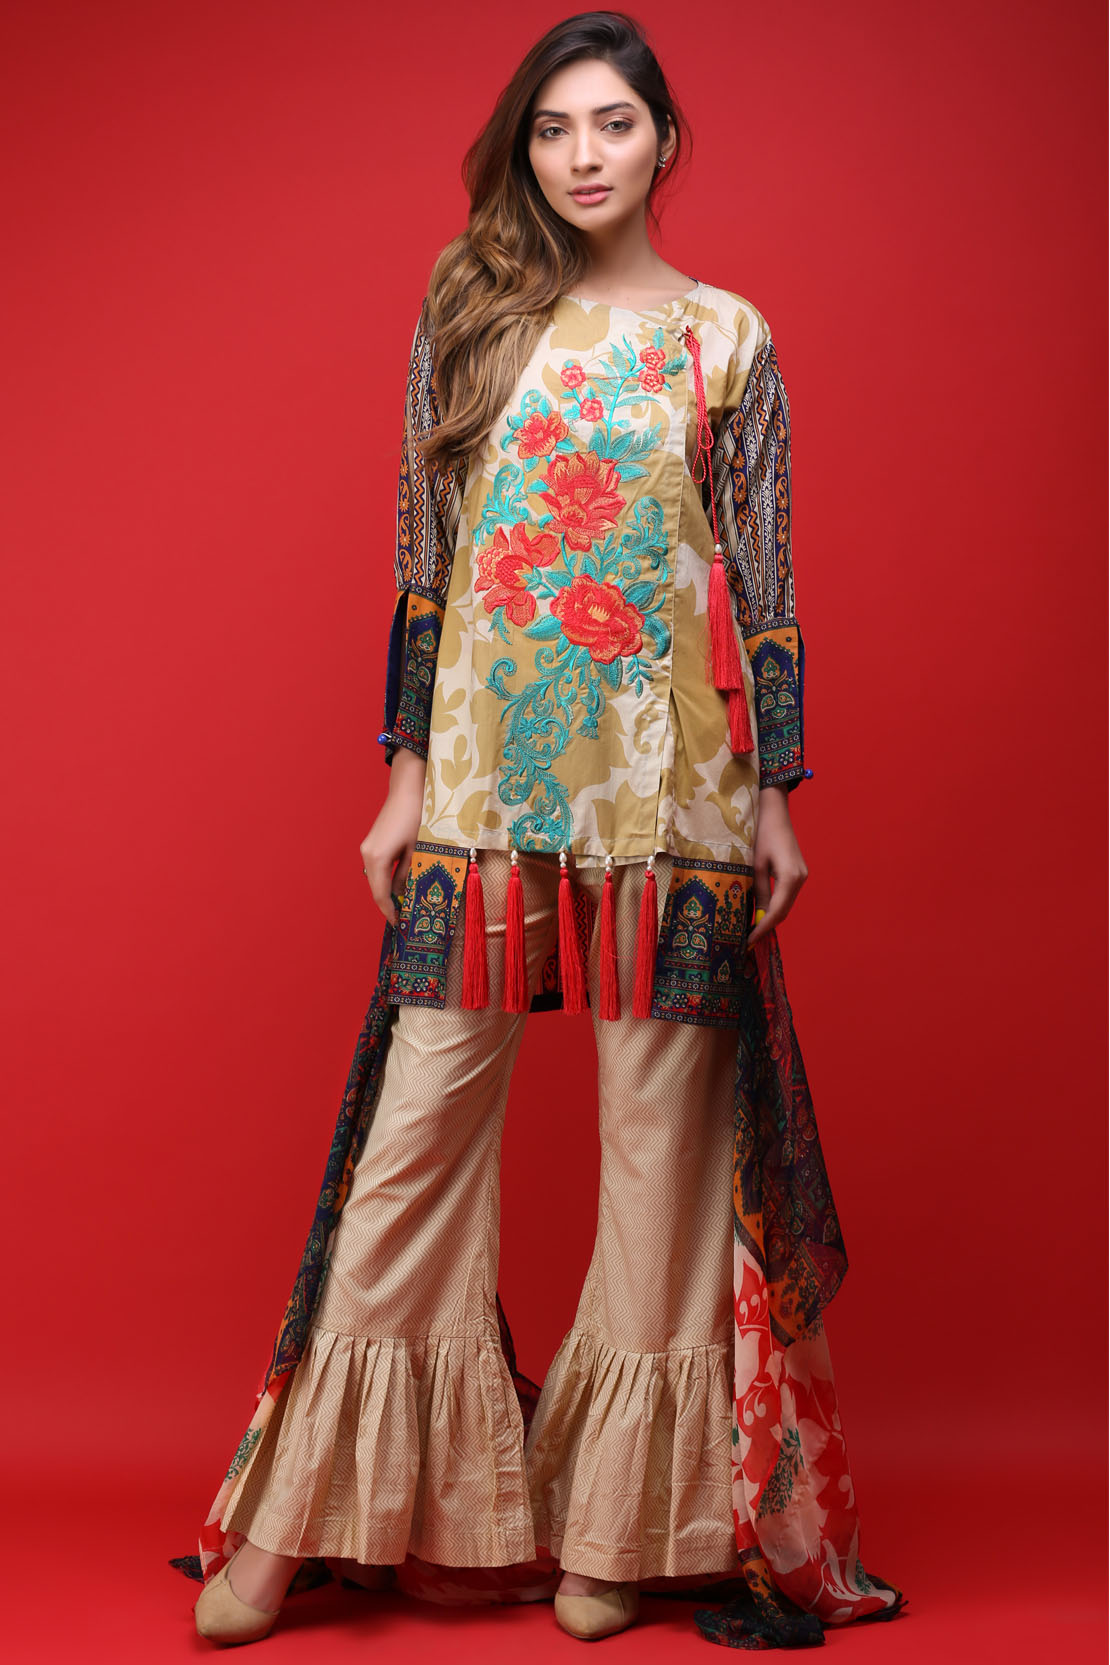 8d9589251b These designs come with the printed and embroidered range having chiffon  dupattas. The price range for this assortment is 2,595 to 3,595 pkr.